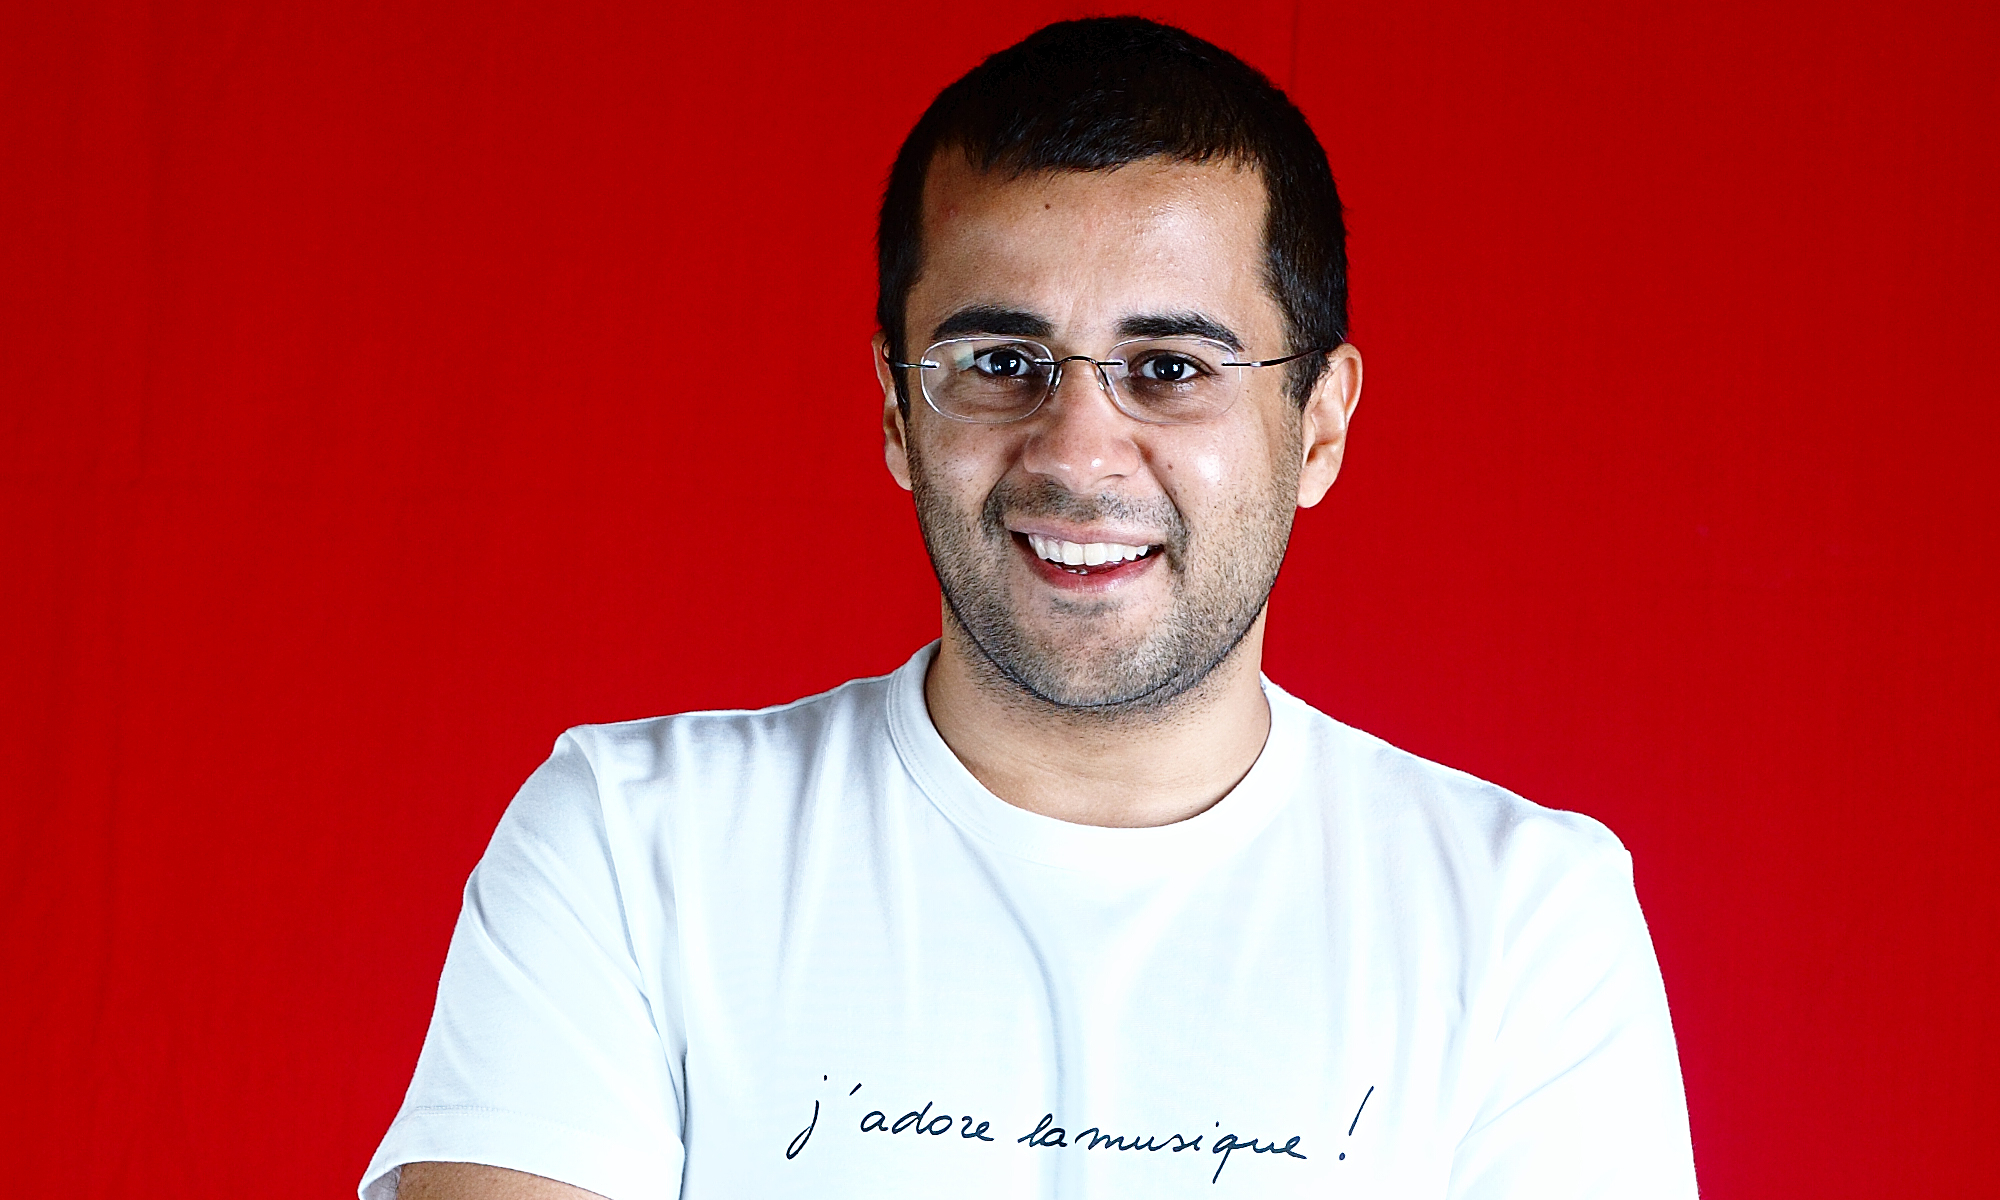 interview of chetan bhagat It's chetann bhagat vs chetan bhagat on twitter and journalists are fixing interviews with the wrong one a journalist tweeted out to bhagat asking for an interview, and got it too - except.